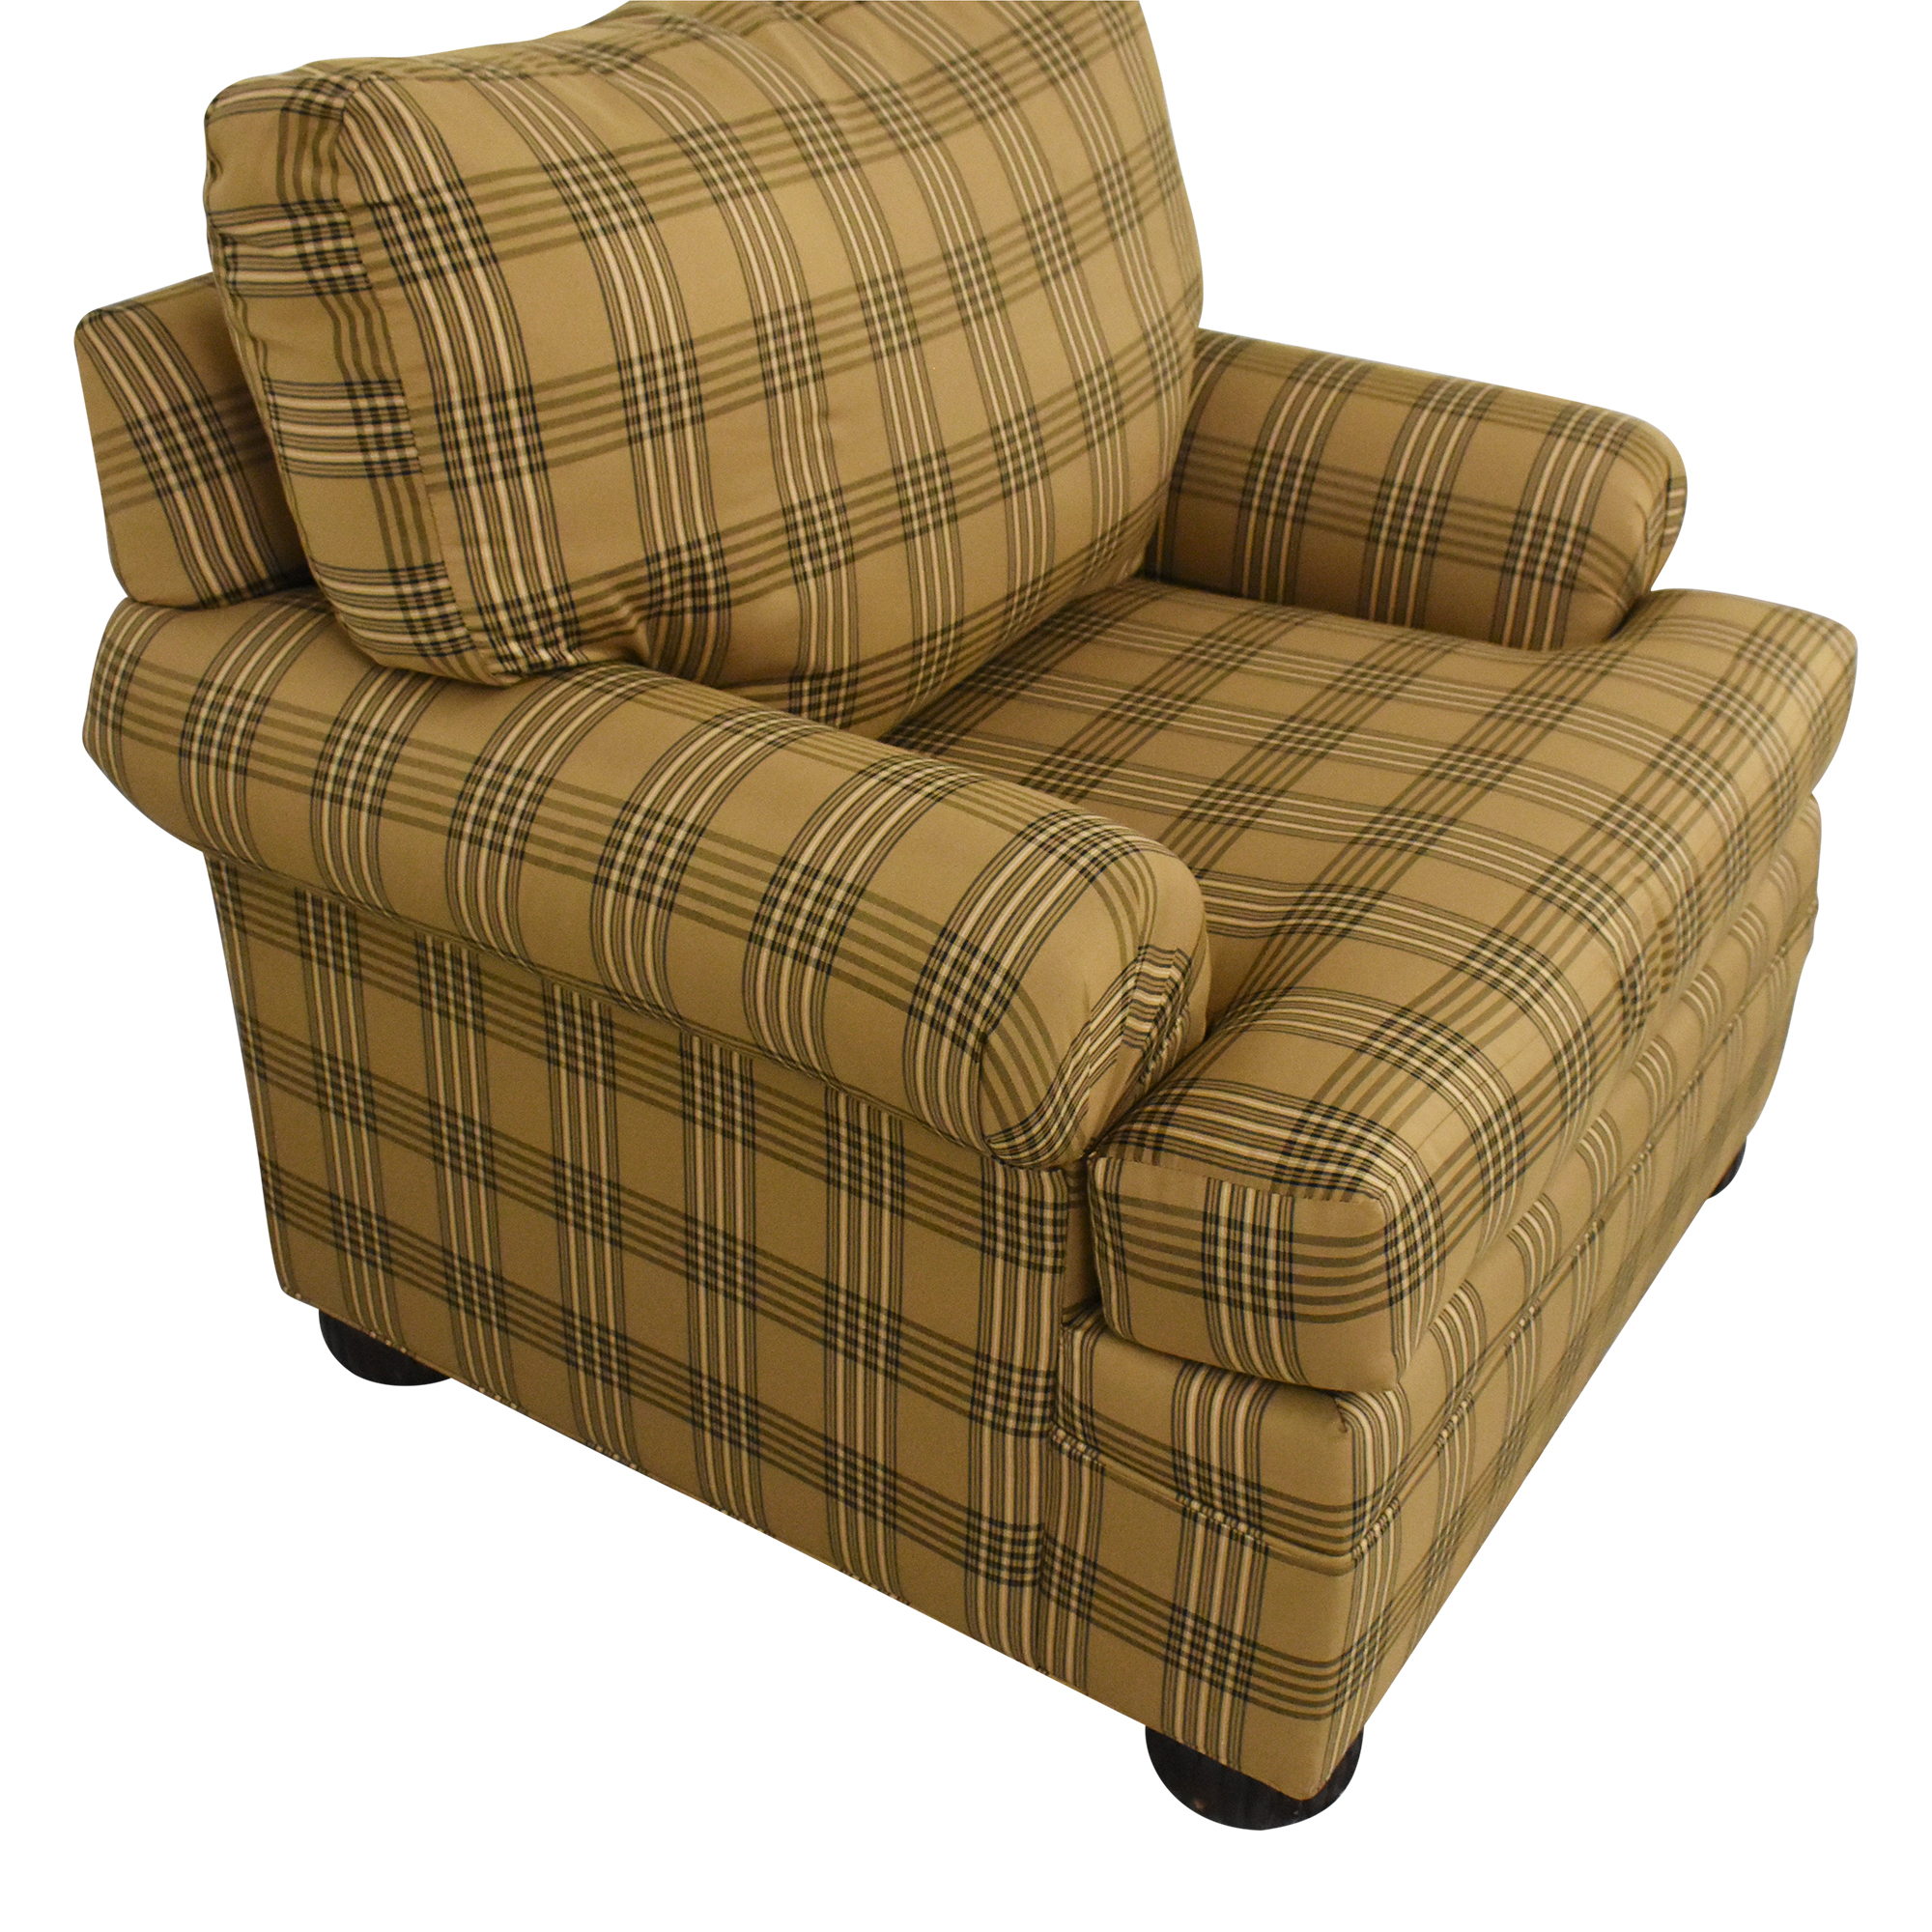 Ethan Allen Club Chair and Ottoman / Accent Chairs